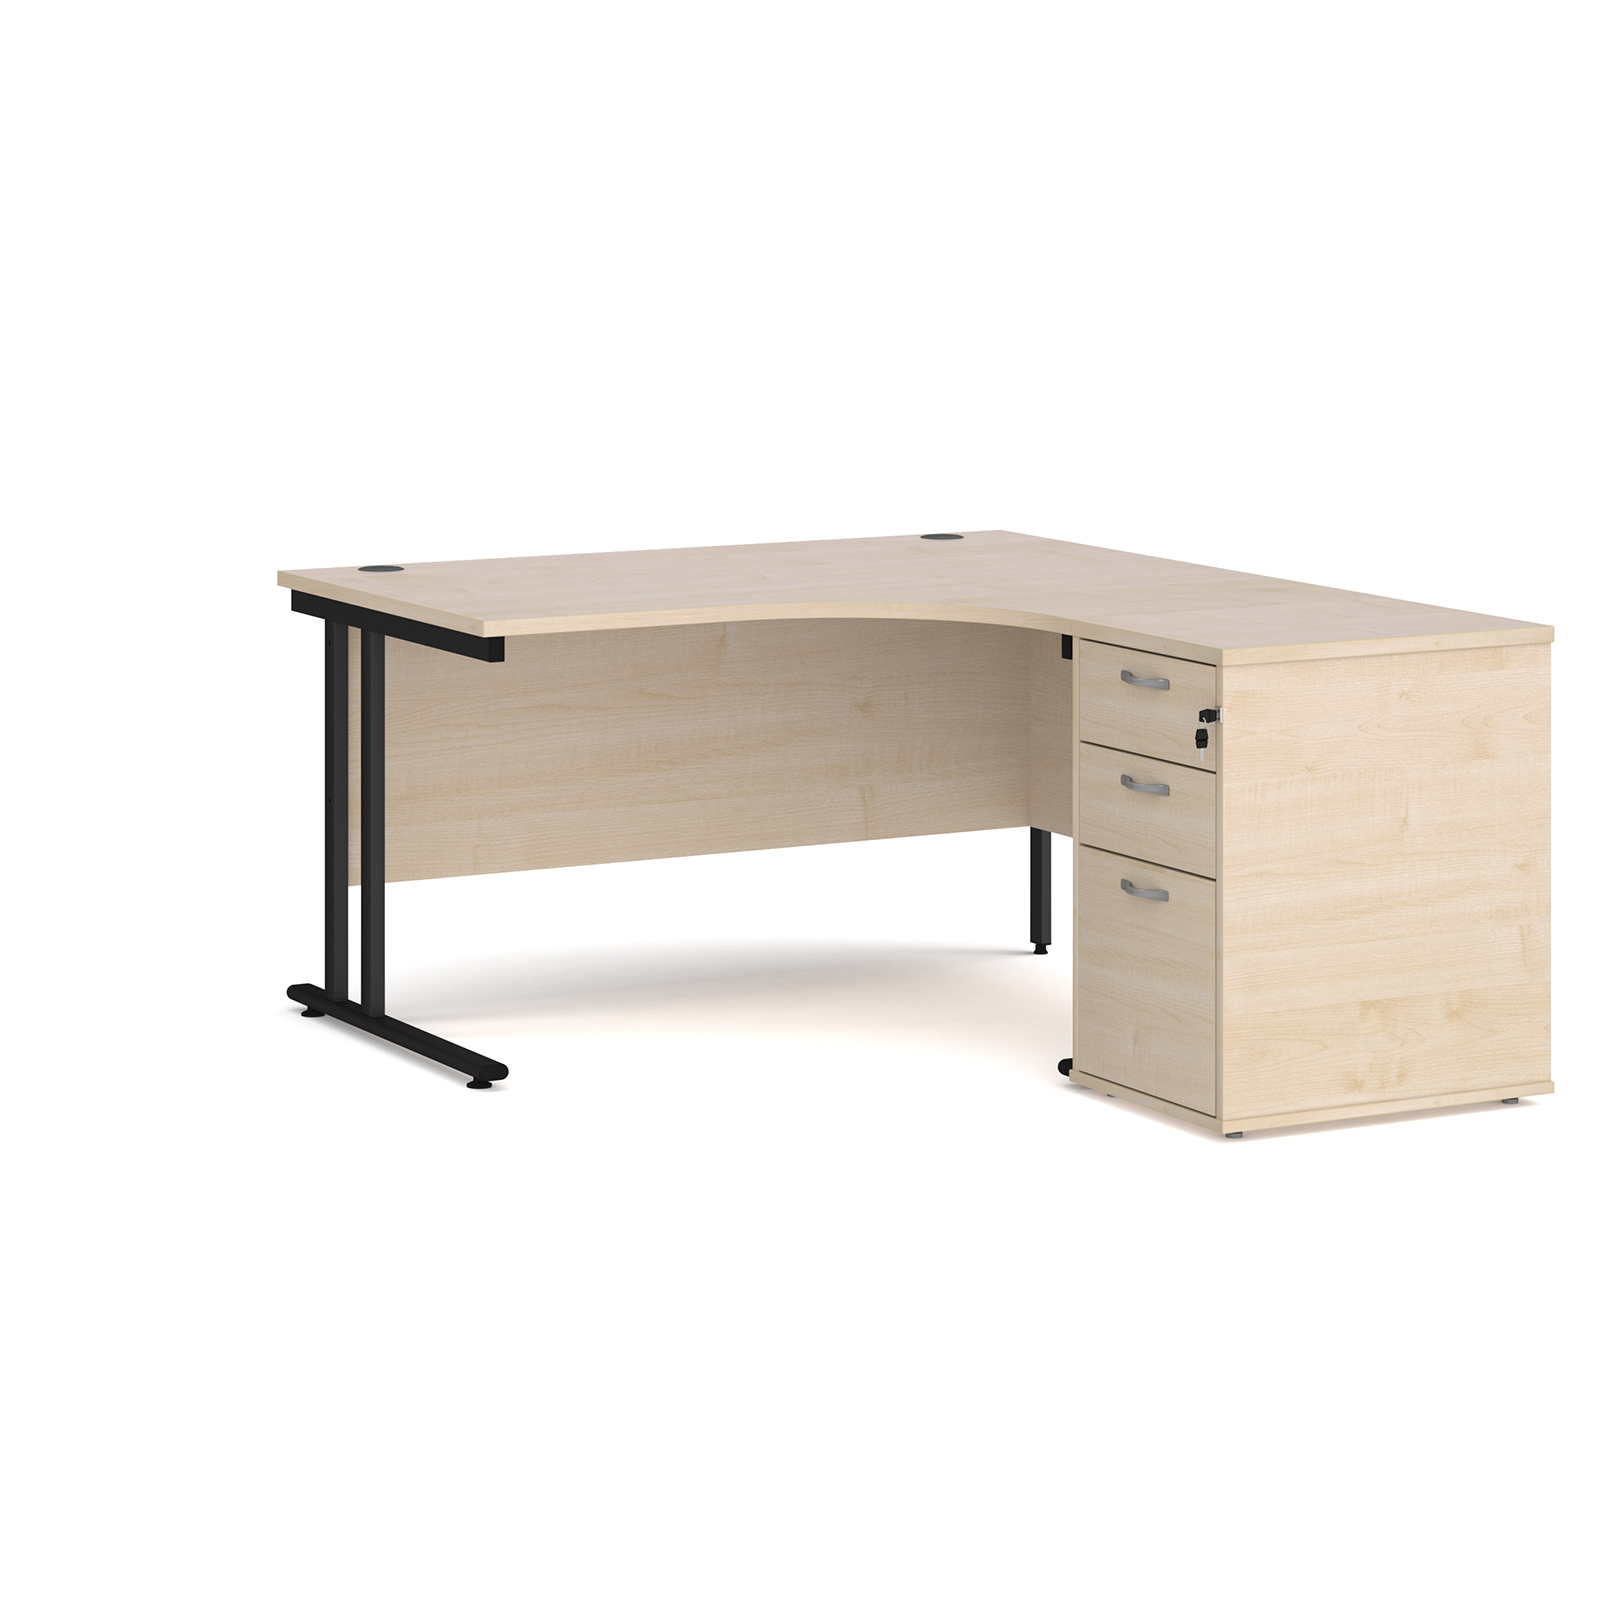 Right Handed Maestro 25 right hand ergonomic desk 1400mm with black cantilever frame and desk high pedestal - maple